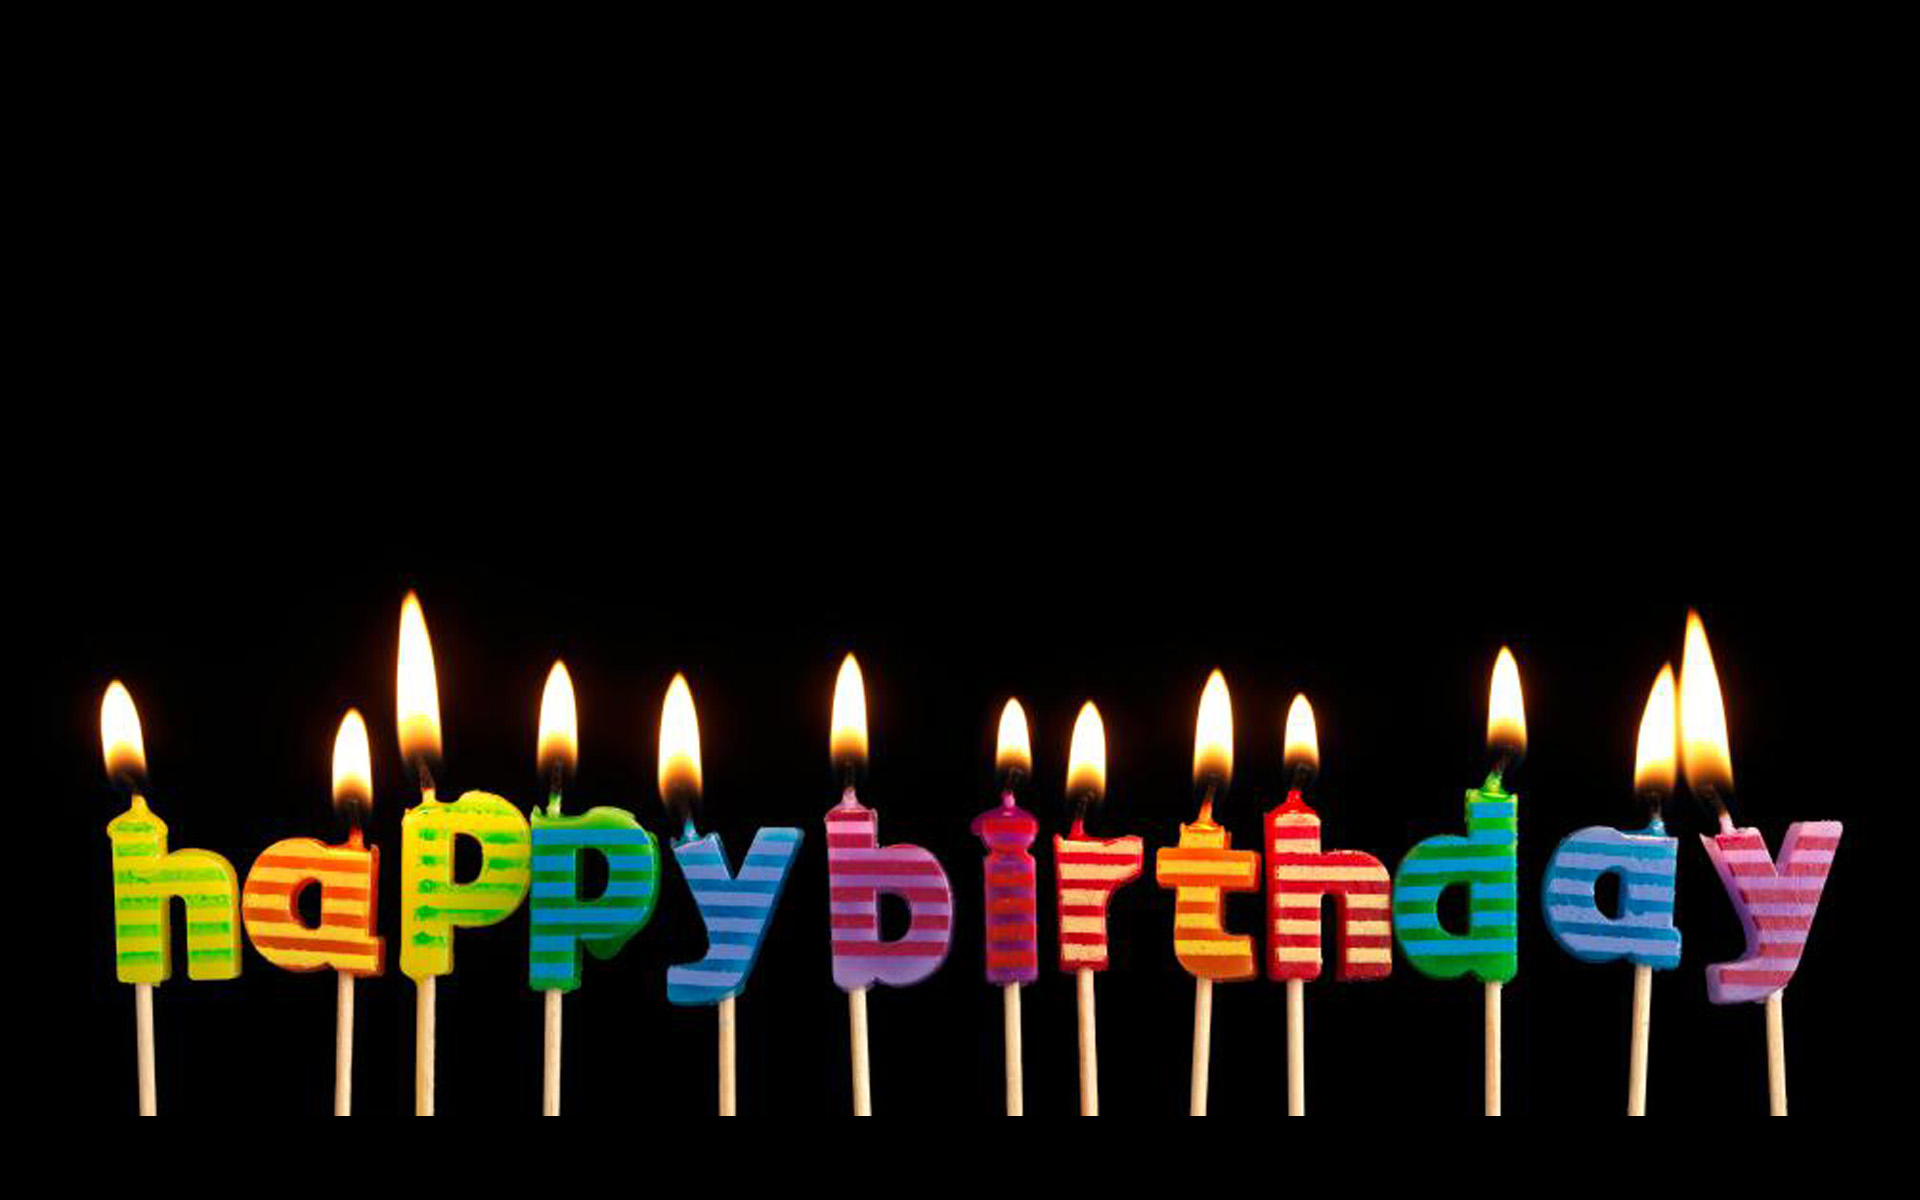 birthday background for male ; birthday-background-images-high-resolution-birthday-backgrounds-18421-18888-hd-wallpapers